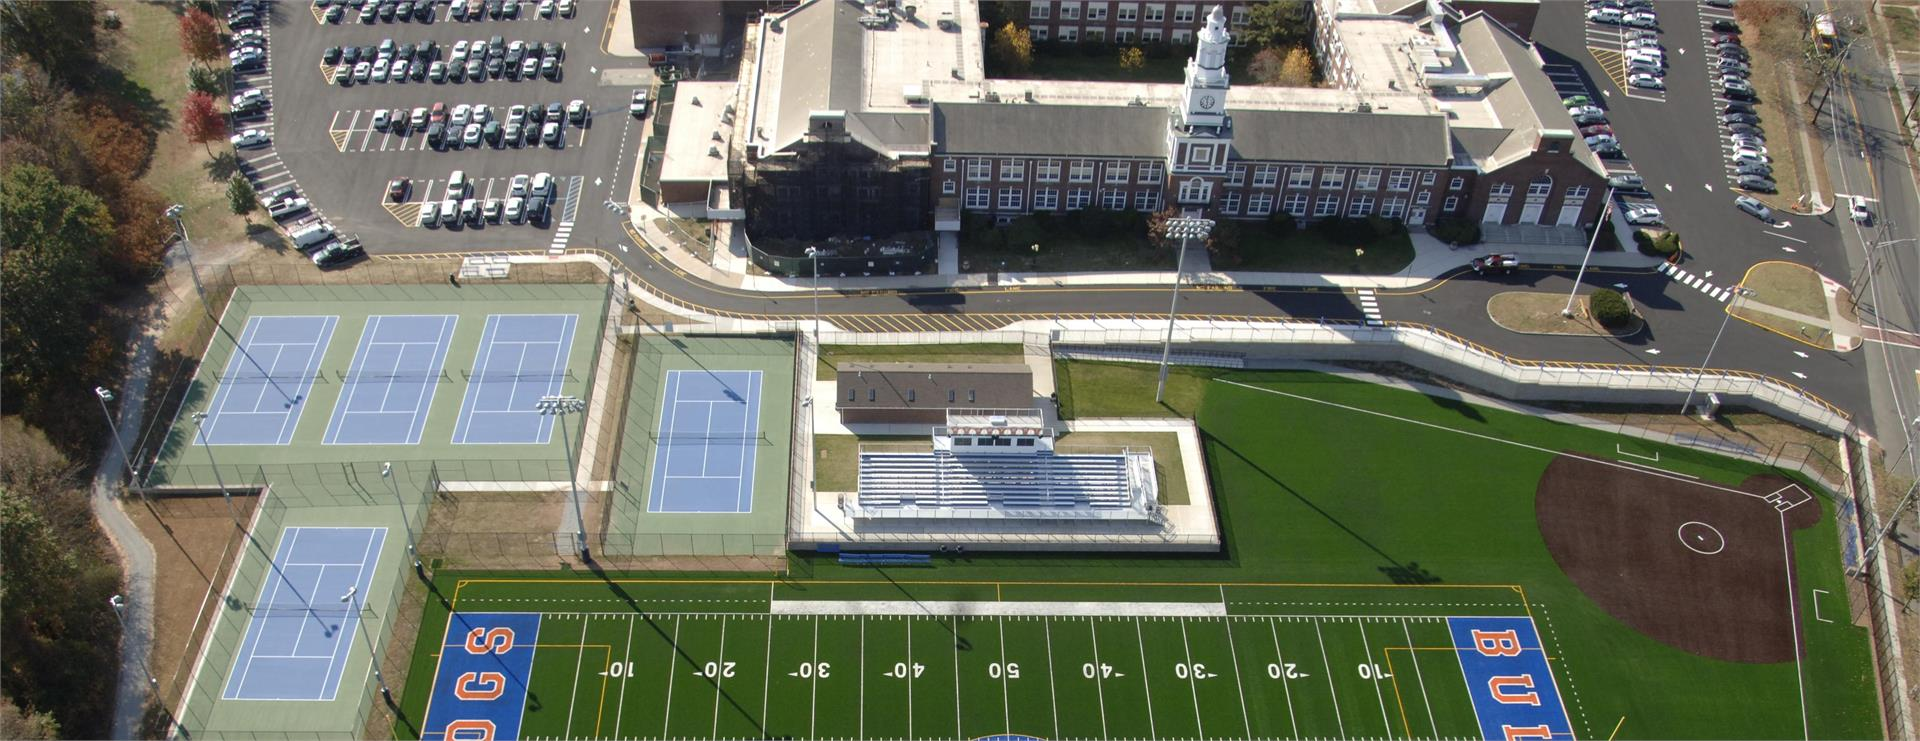 aerial view of high school and football field